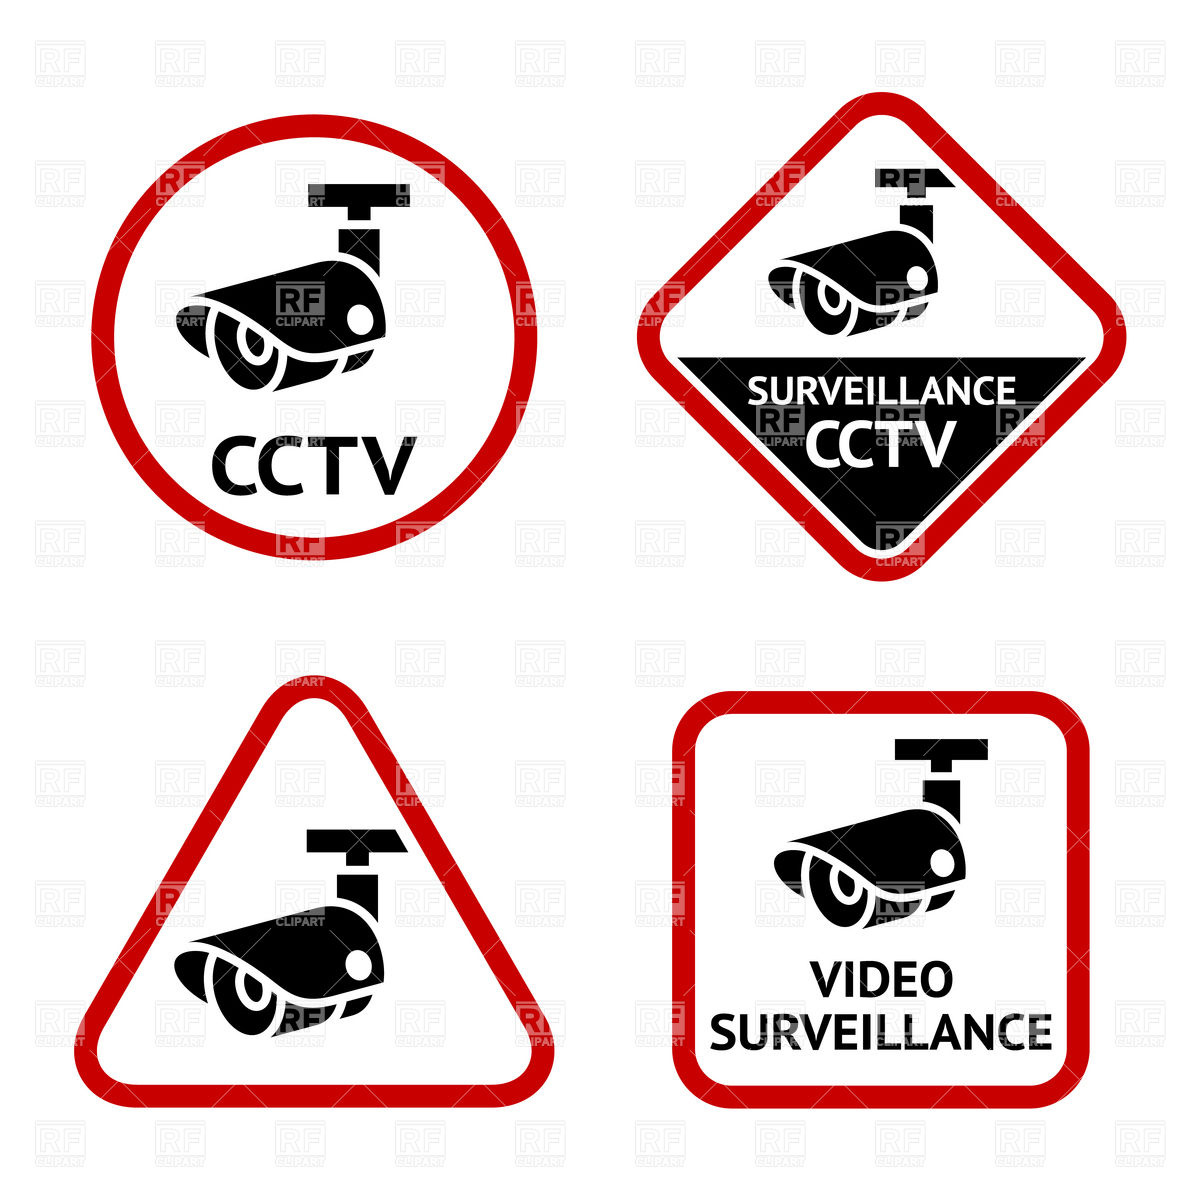 Cctv clipart security system #2